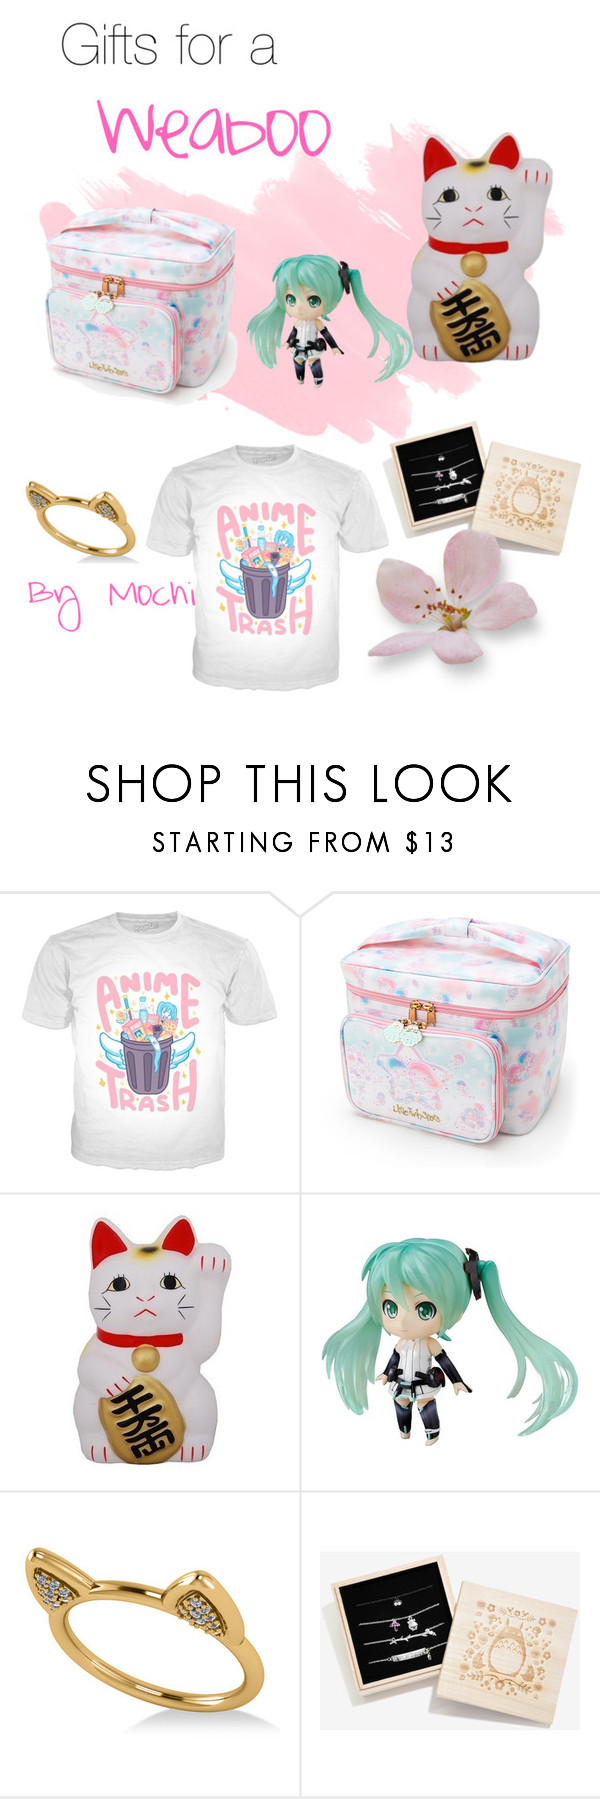 """""""Gifts for a Weaboo"""" by mochi0 ❤ liked on Polyvore featuring Allurez and Studio Ghibli"""